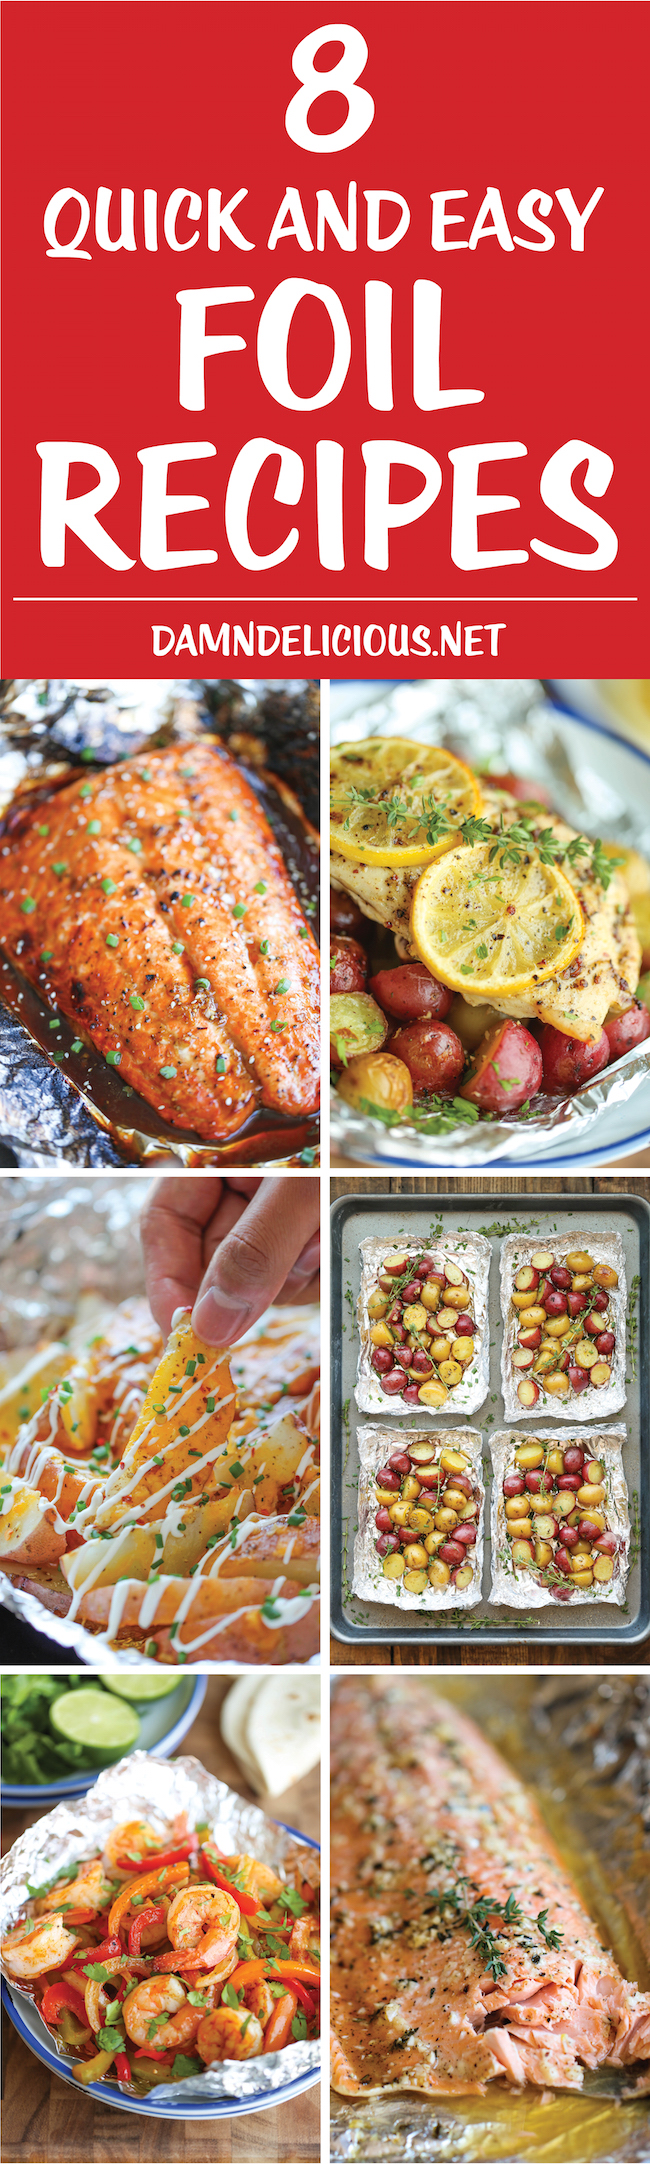 Quick and easy camp oven recipes